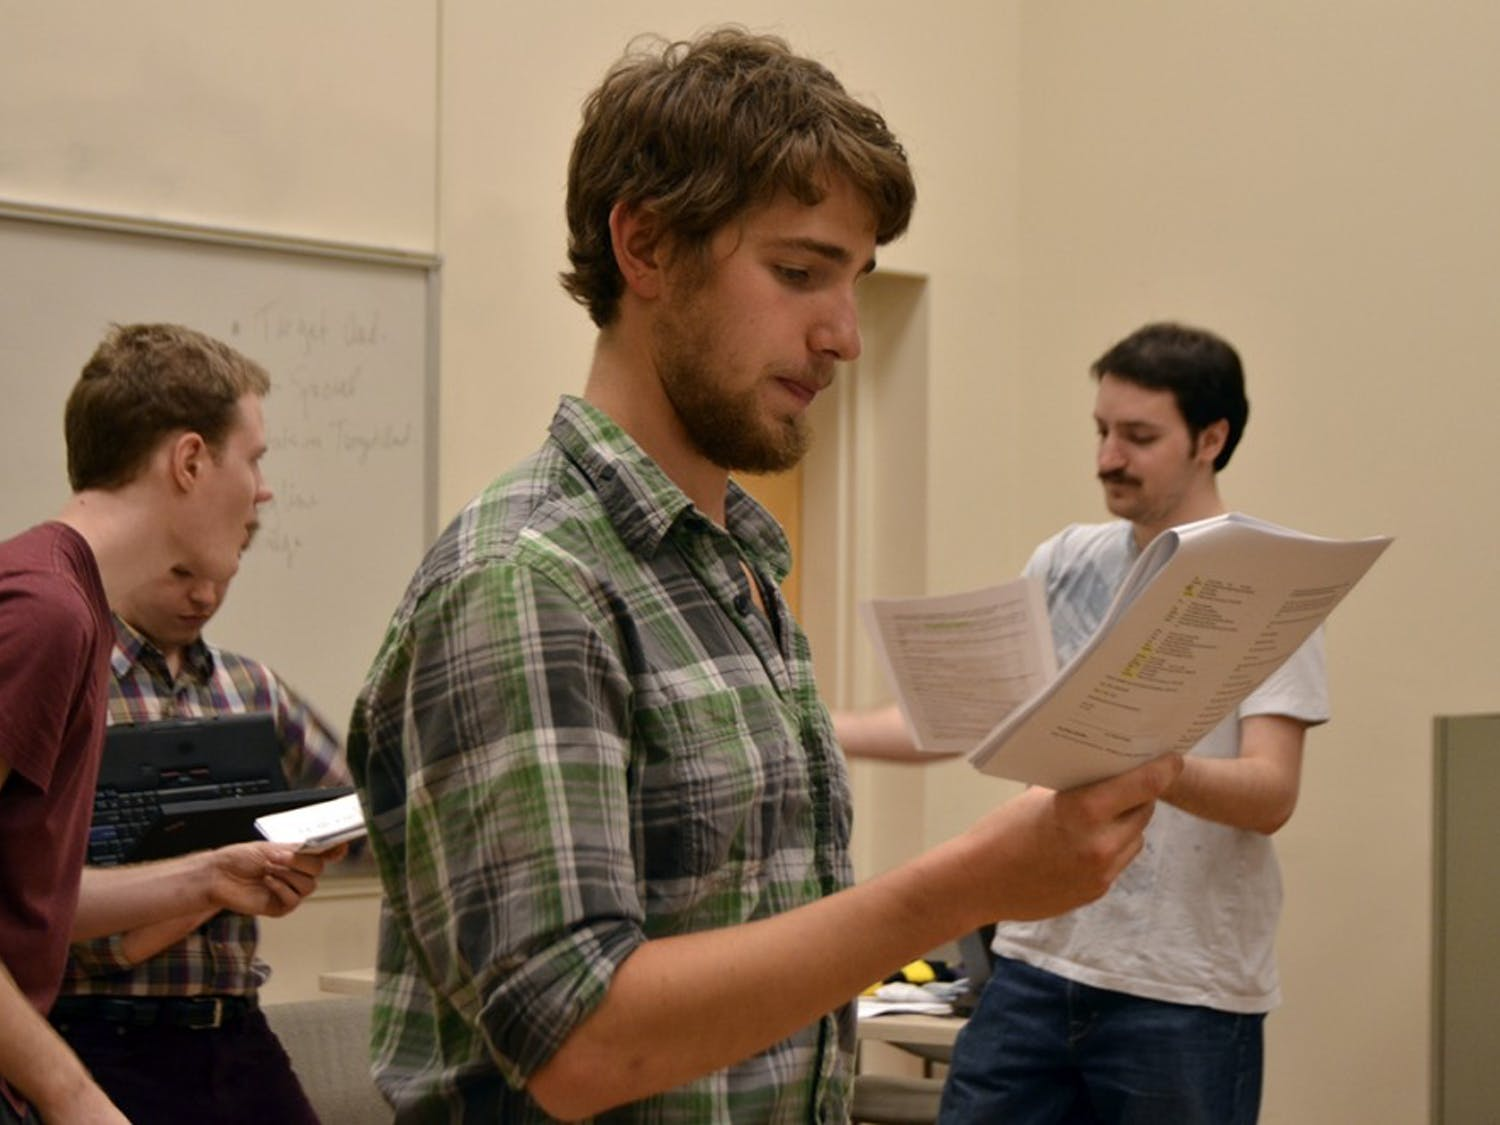 """Brandon Rafalson, Anthony Kilburn and Ethan Carleton, actors of """"Arr! Eh?"""", rehearse a song for the upcoming performance on Sunday. As the performance is a staged reading, """"it is mostly to give everyone a sense of the songs and dialogue,"""" said Cameron Yow, the director of the student written work."""